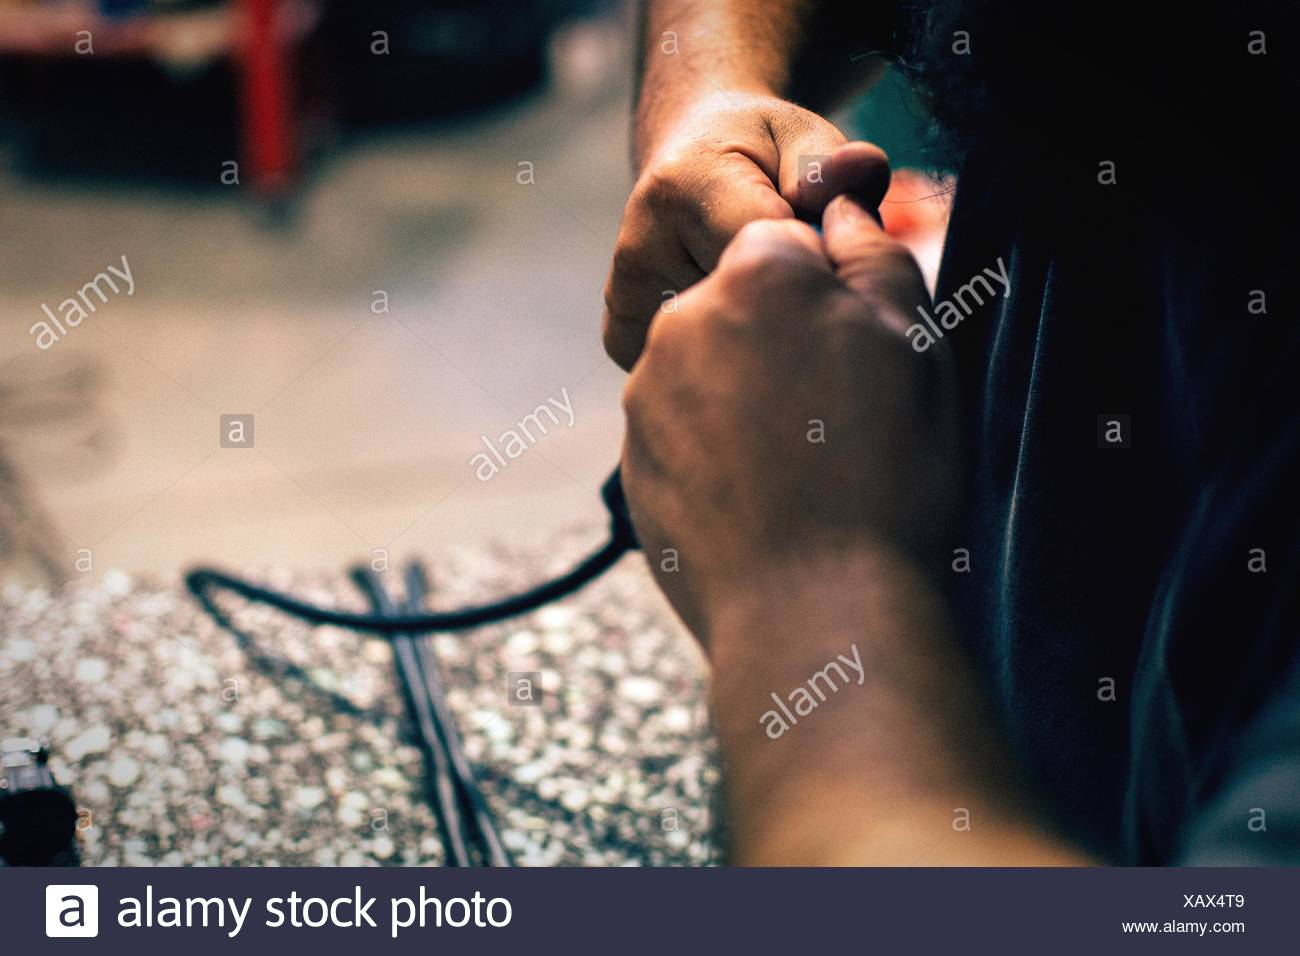 Cropped Hand Of Man Mending Wire Stock Photo